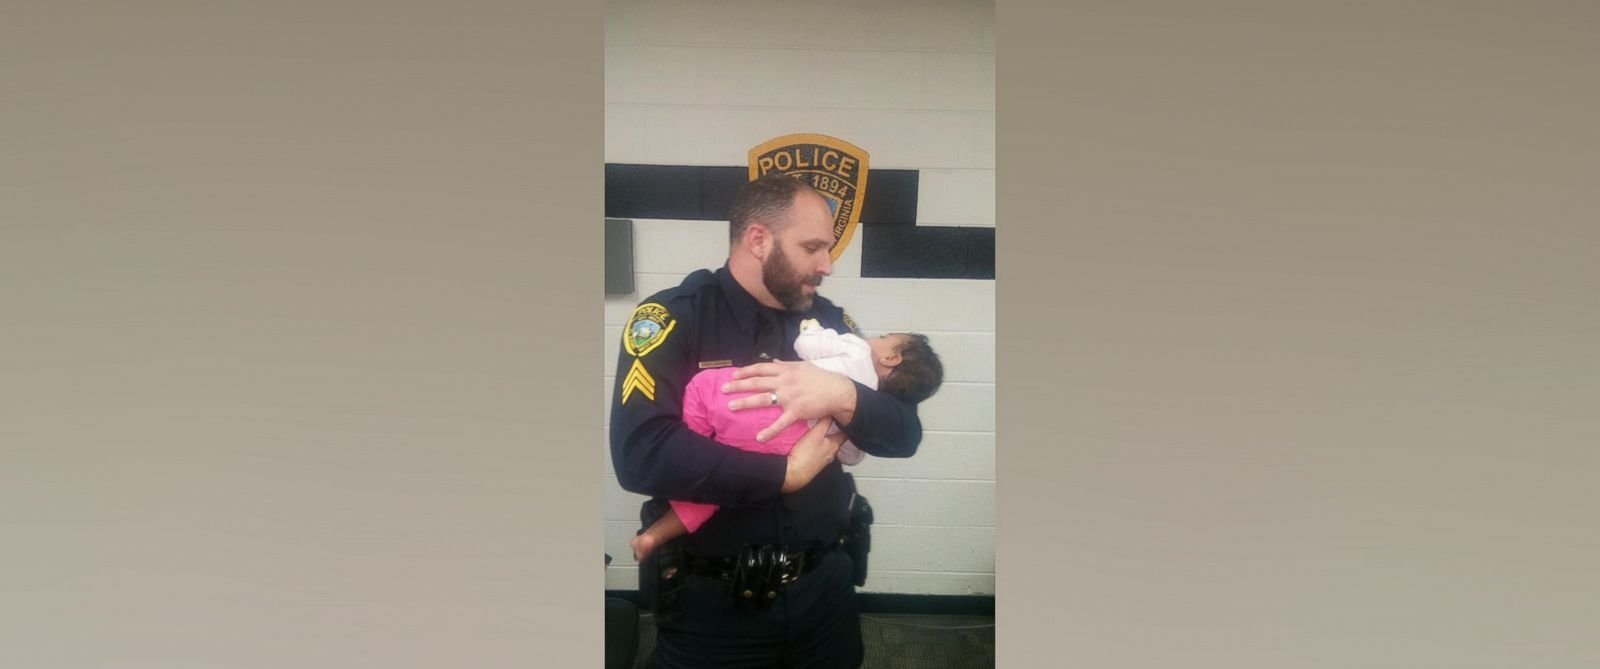 Police Officer Rescues Baby From Grocery Store Bathroom